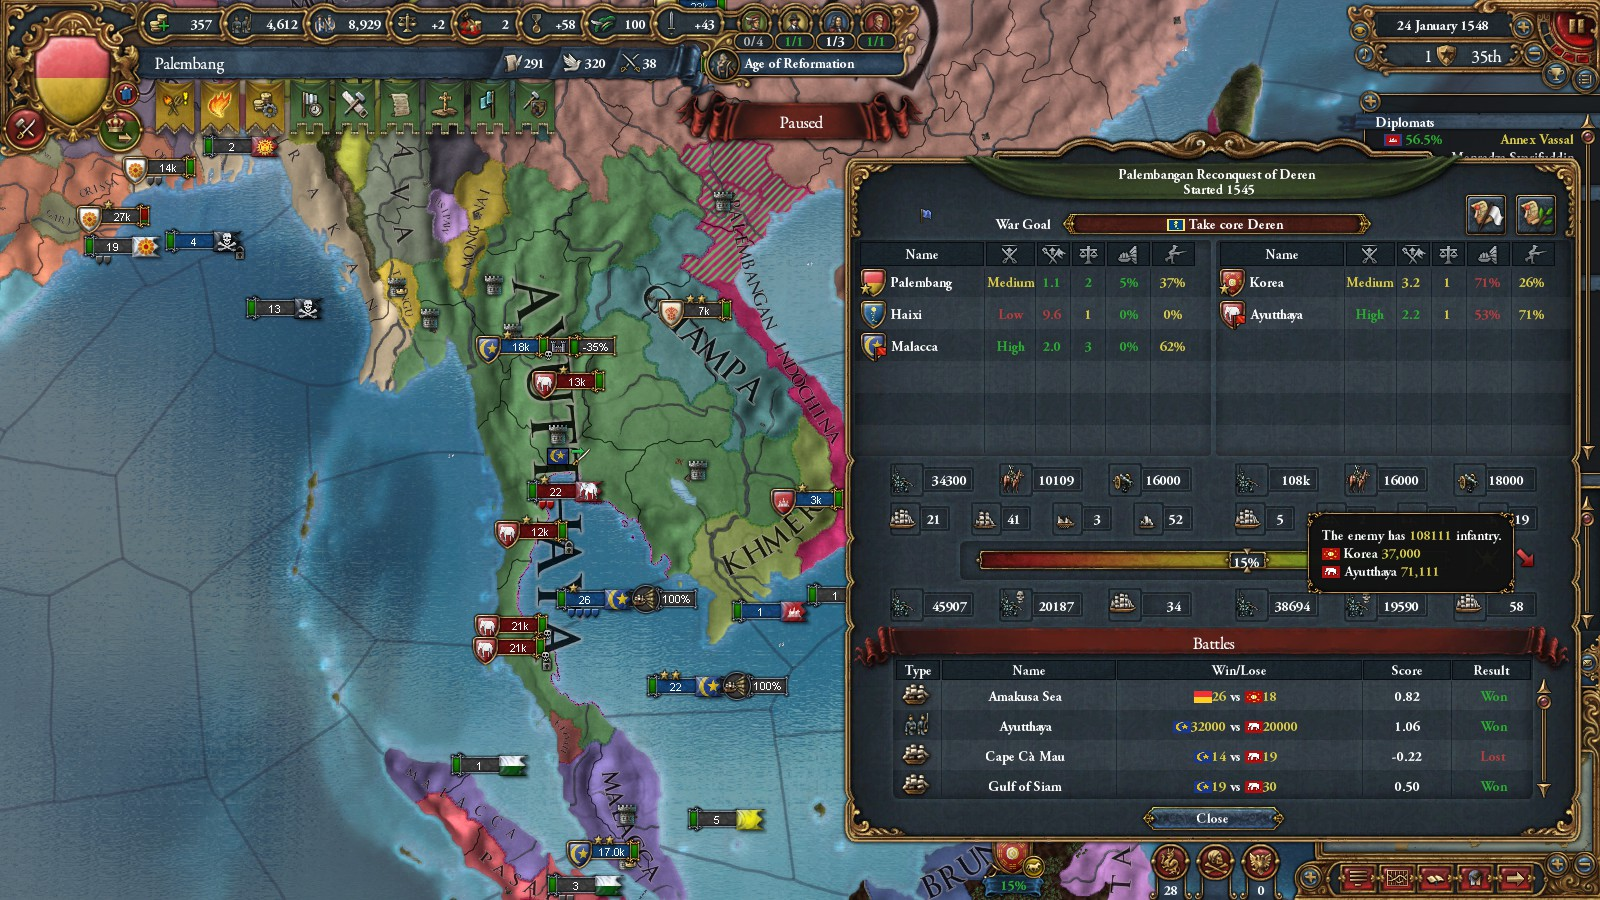 General complaints after failing to bring back Byzantium the